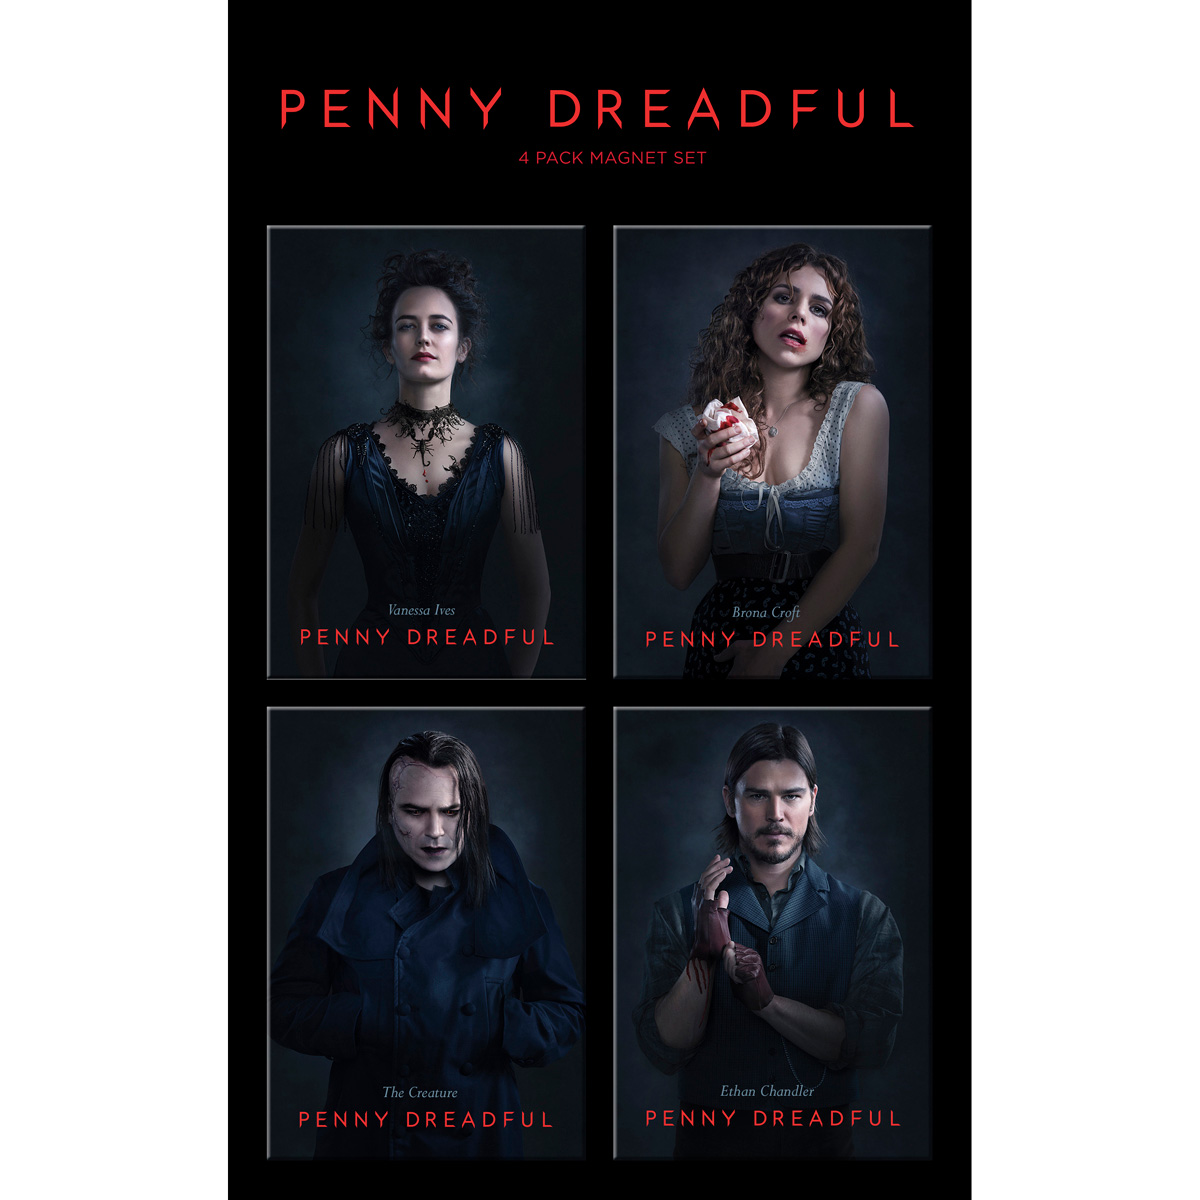 Penny Dreadful Cast Set 1 Magnets [Set of 4]